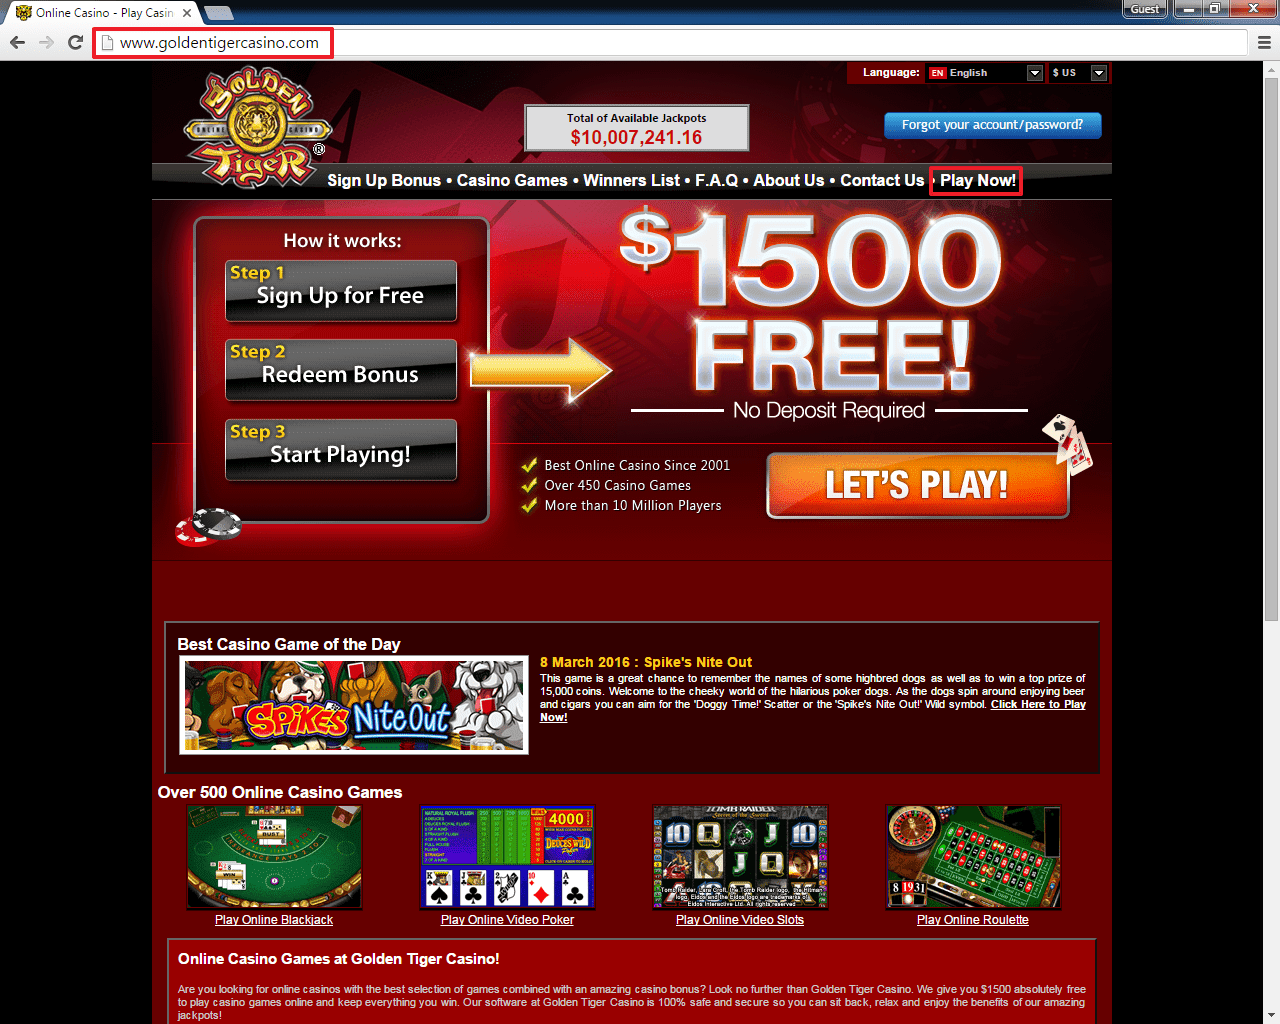 golden tiger flash casino login